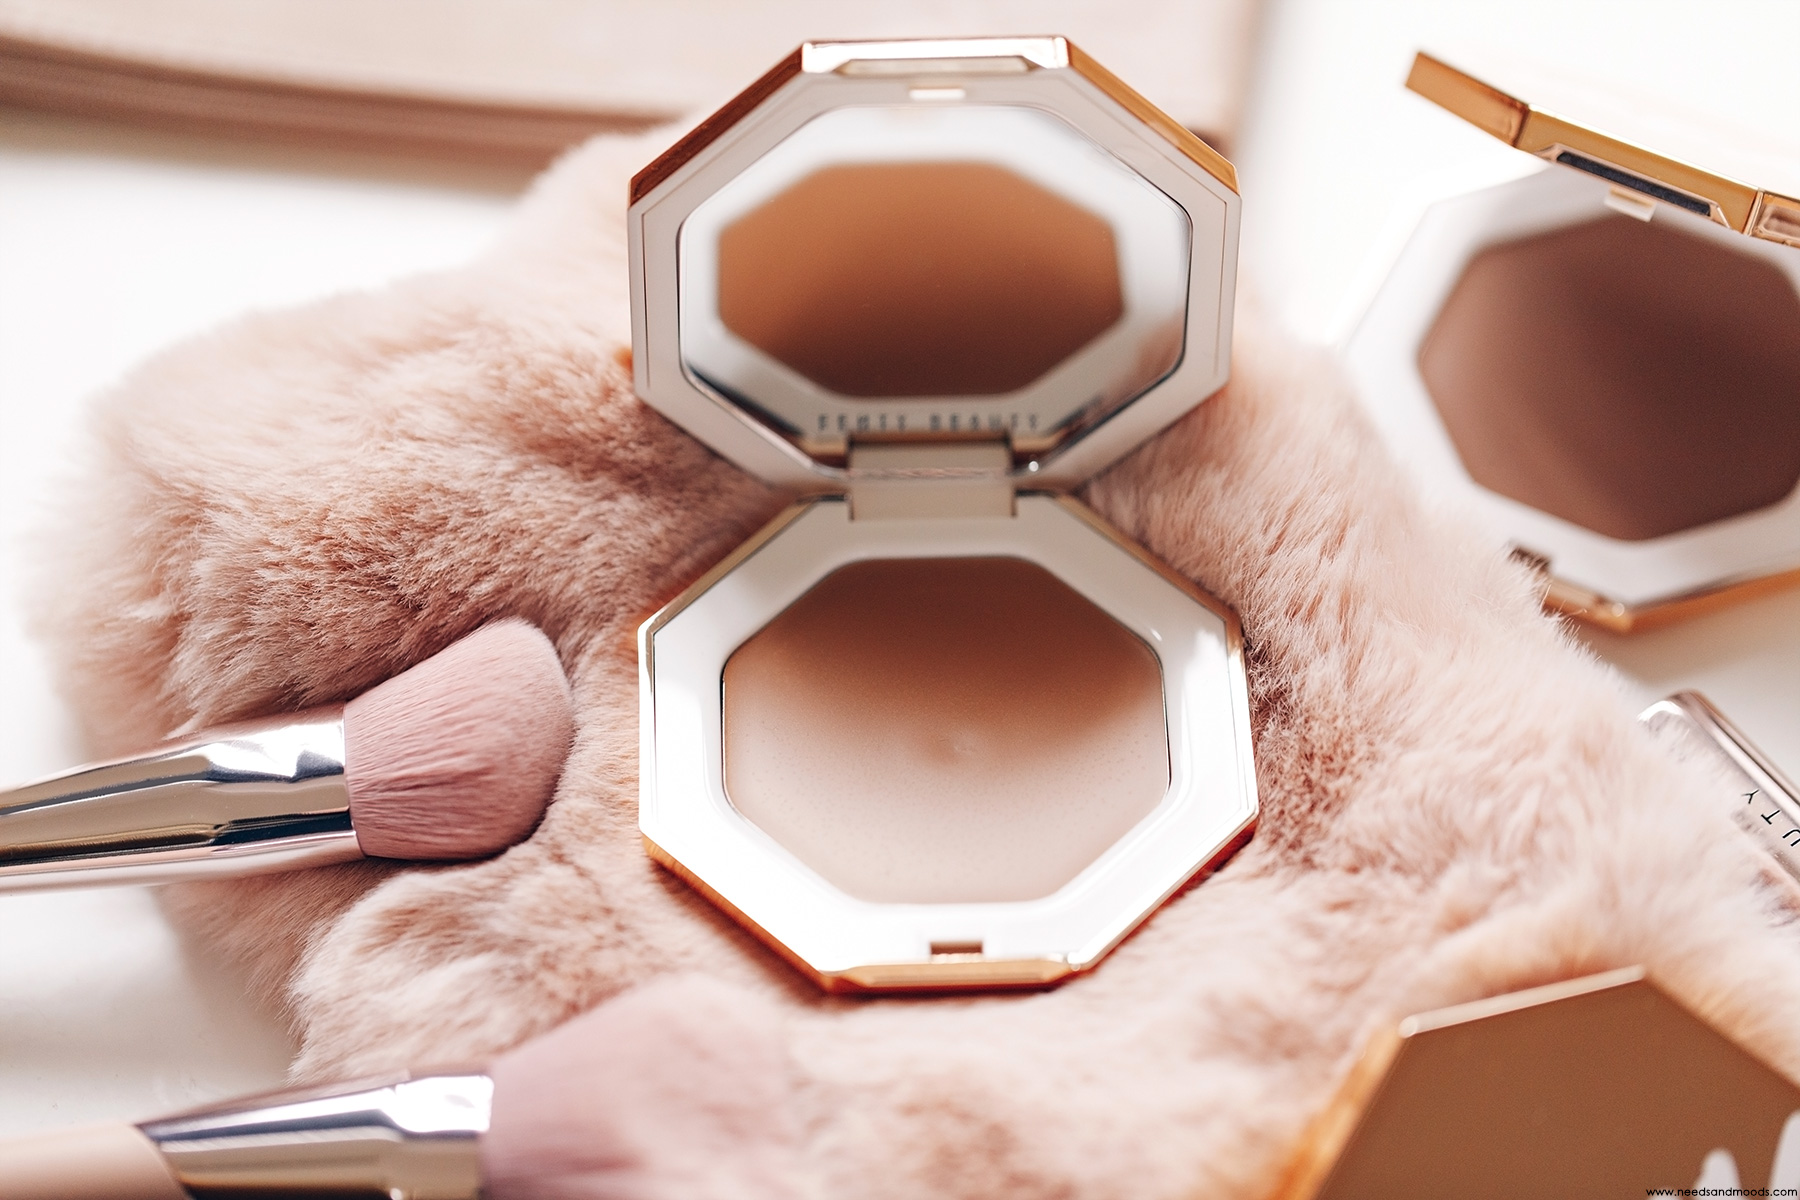 fenty beauty cheeks out freestyle bronzer creme amber